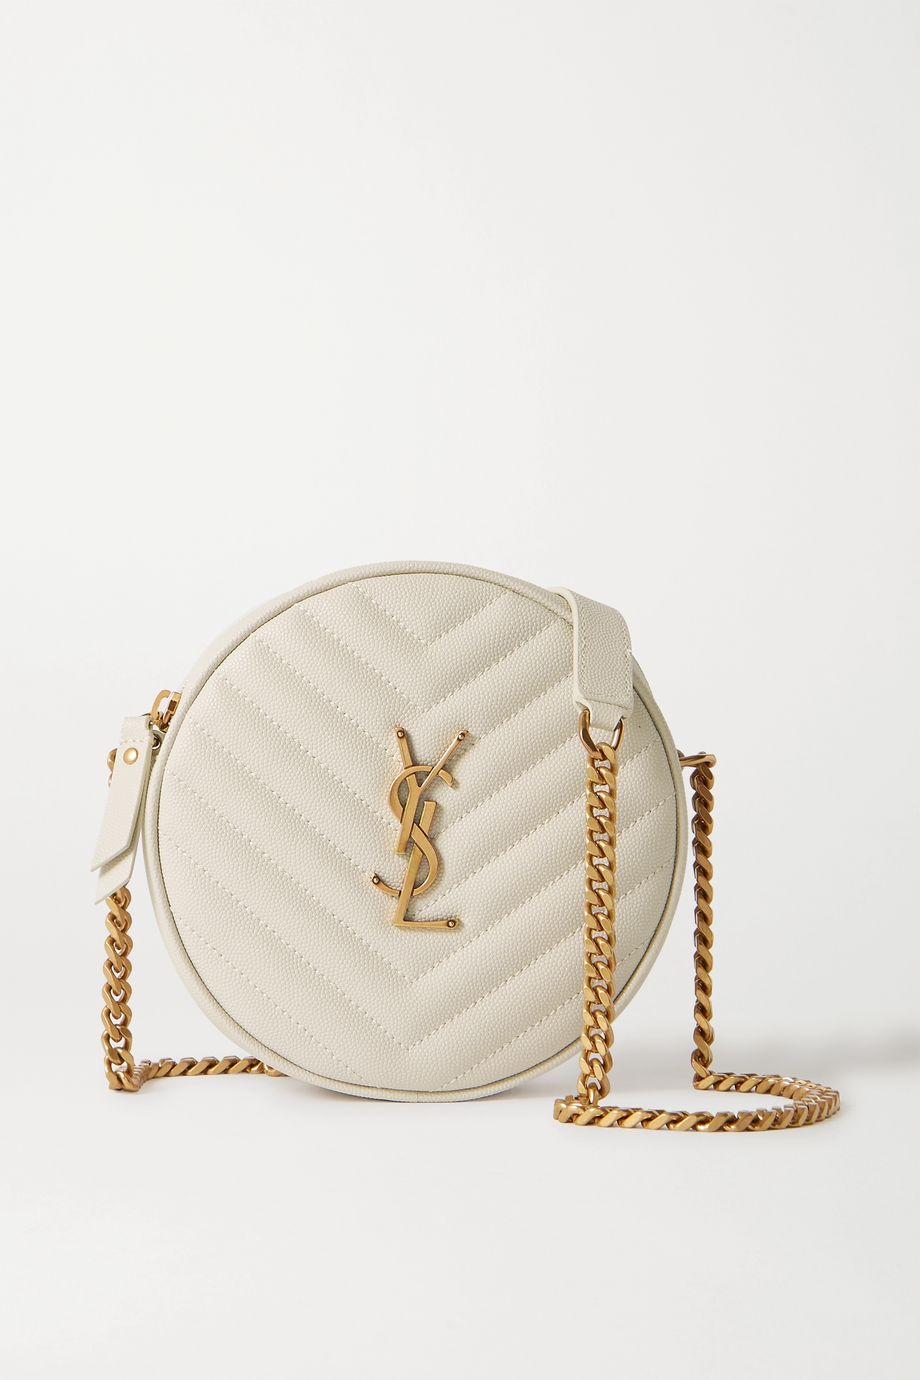 SAINT LAURENT Circle quilted textured-leather shoulder bag